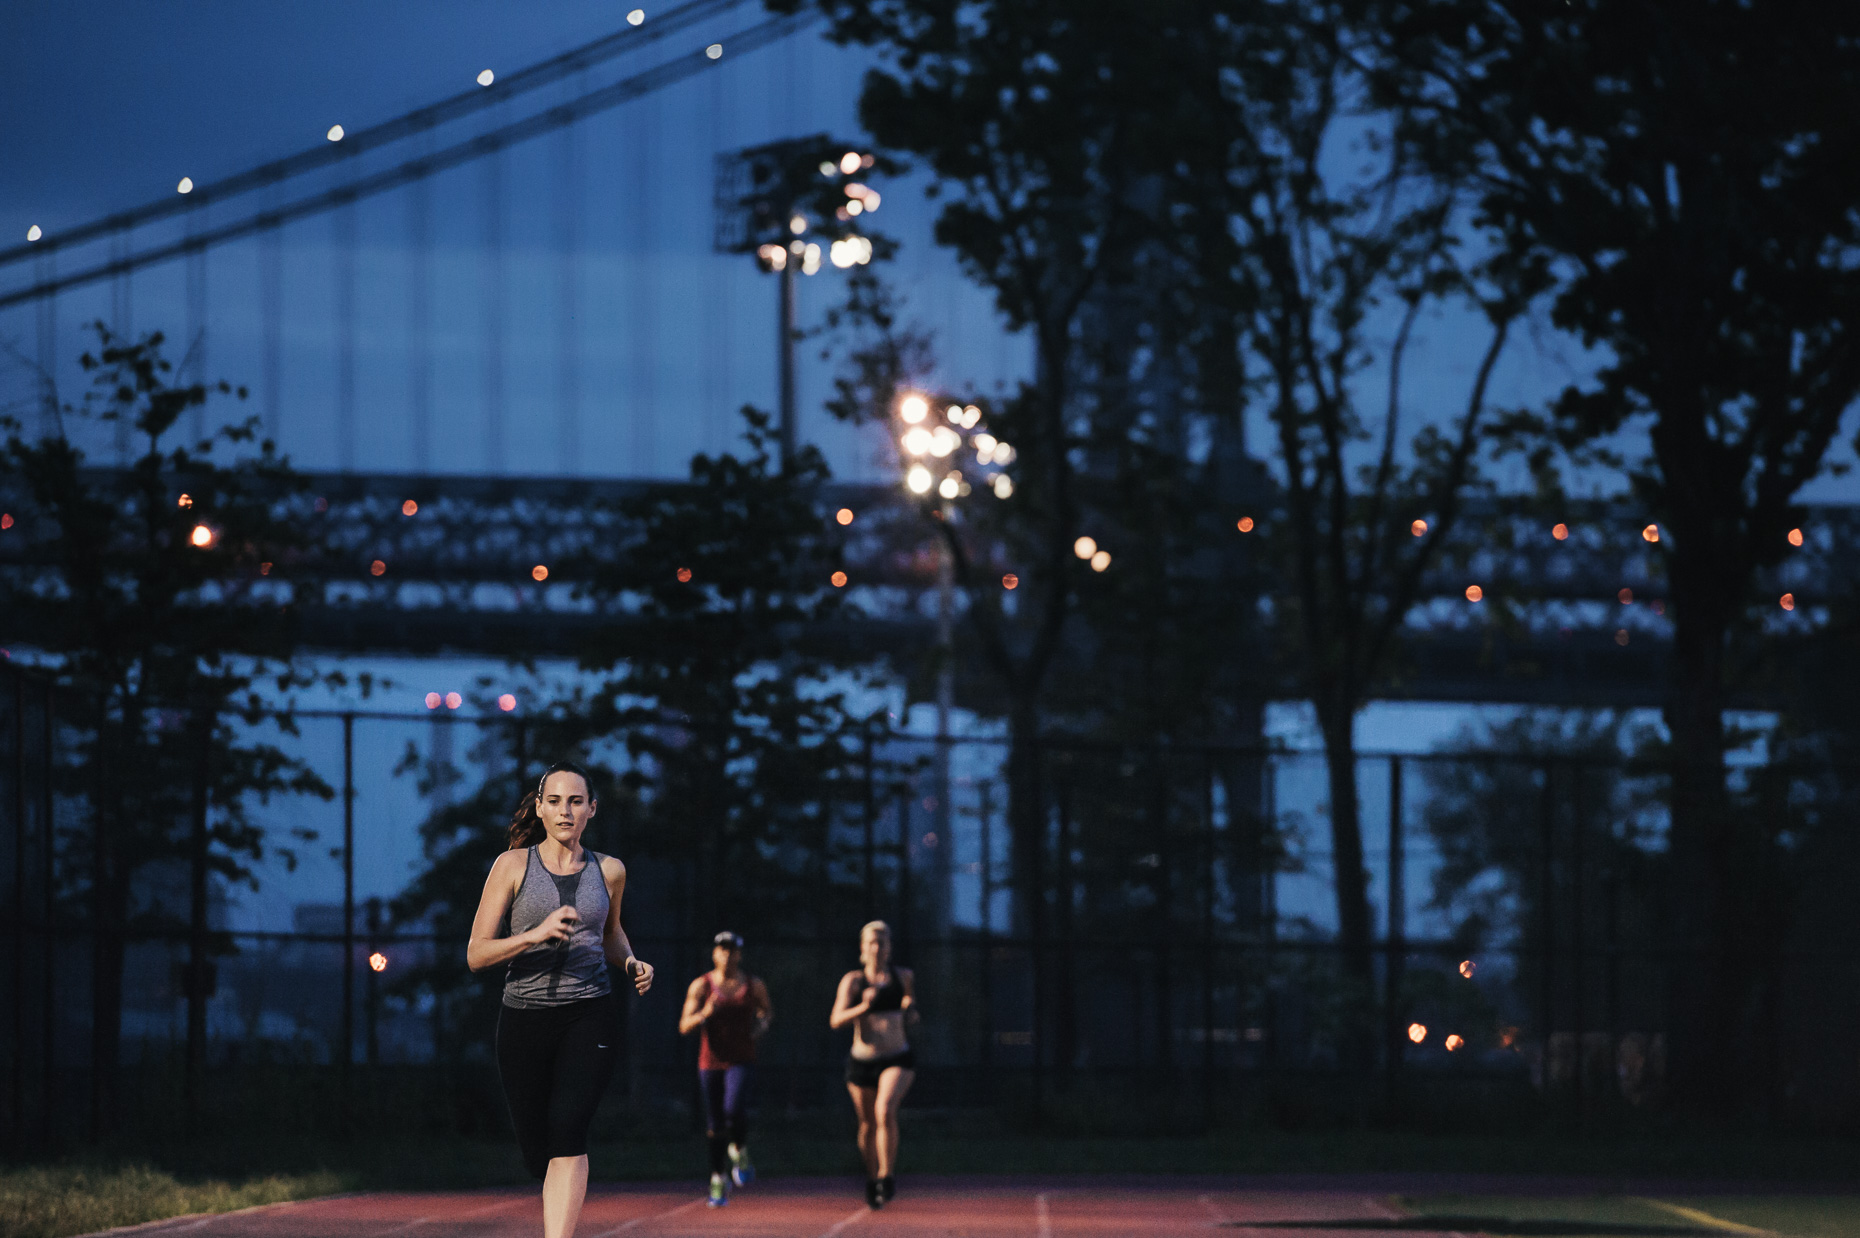 Running_Black_Roses_New_York_City_May_2013_c_Brecheis-0531-V02